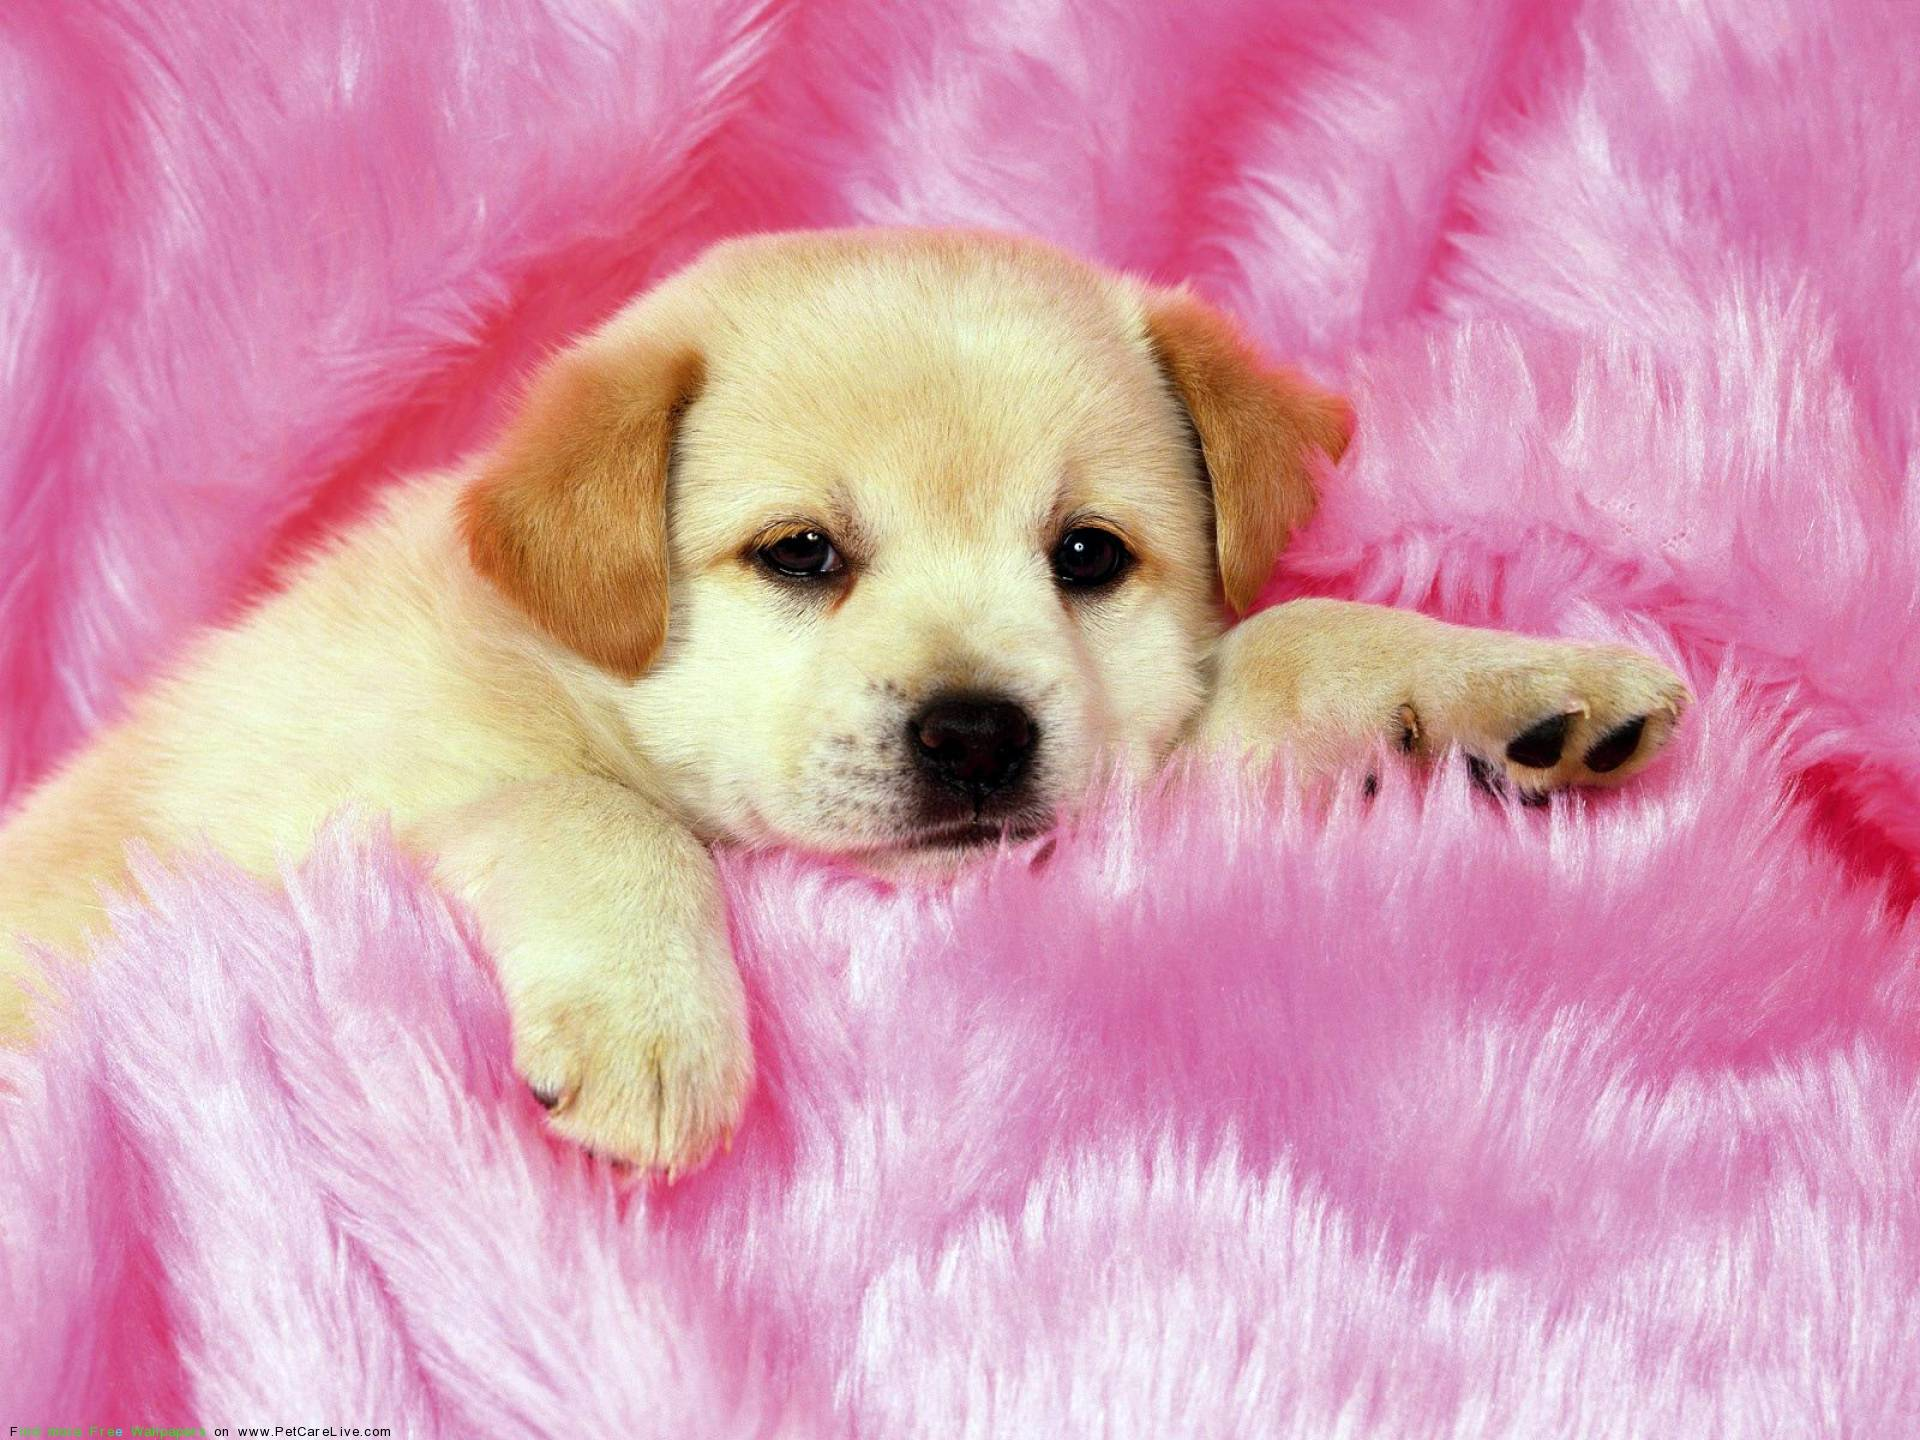 Cute Dogs And Puppies Wallpapers 1920x1440